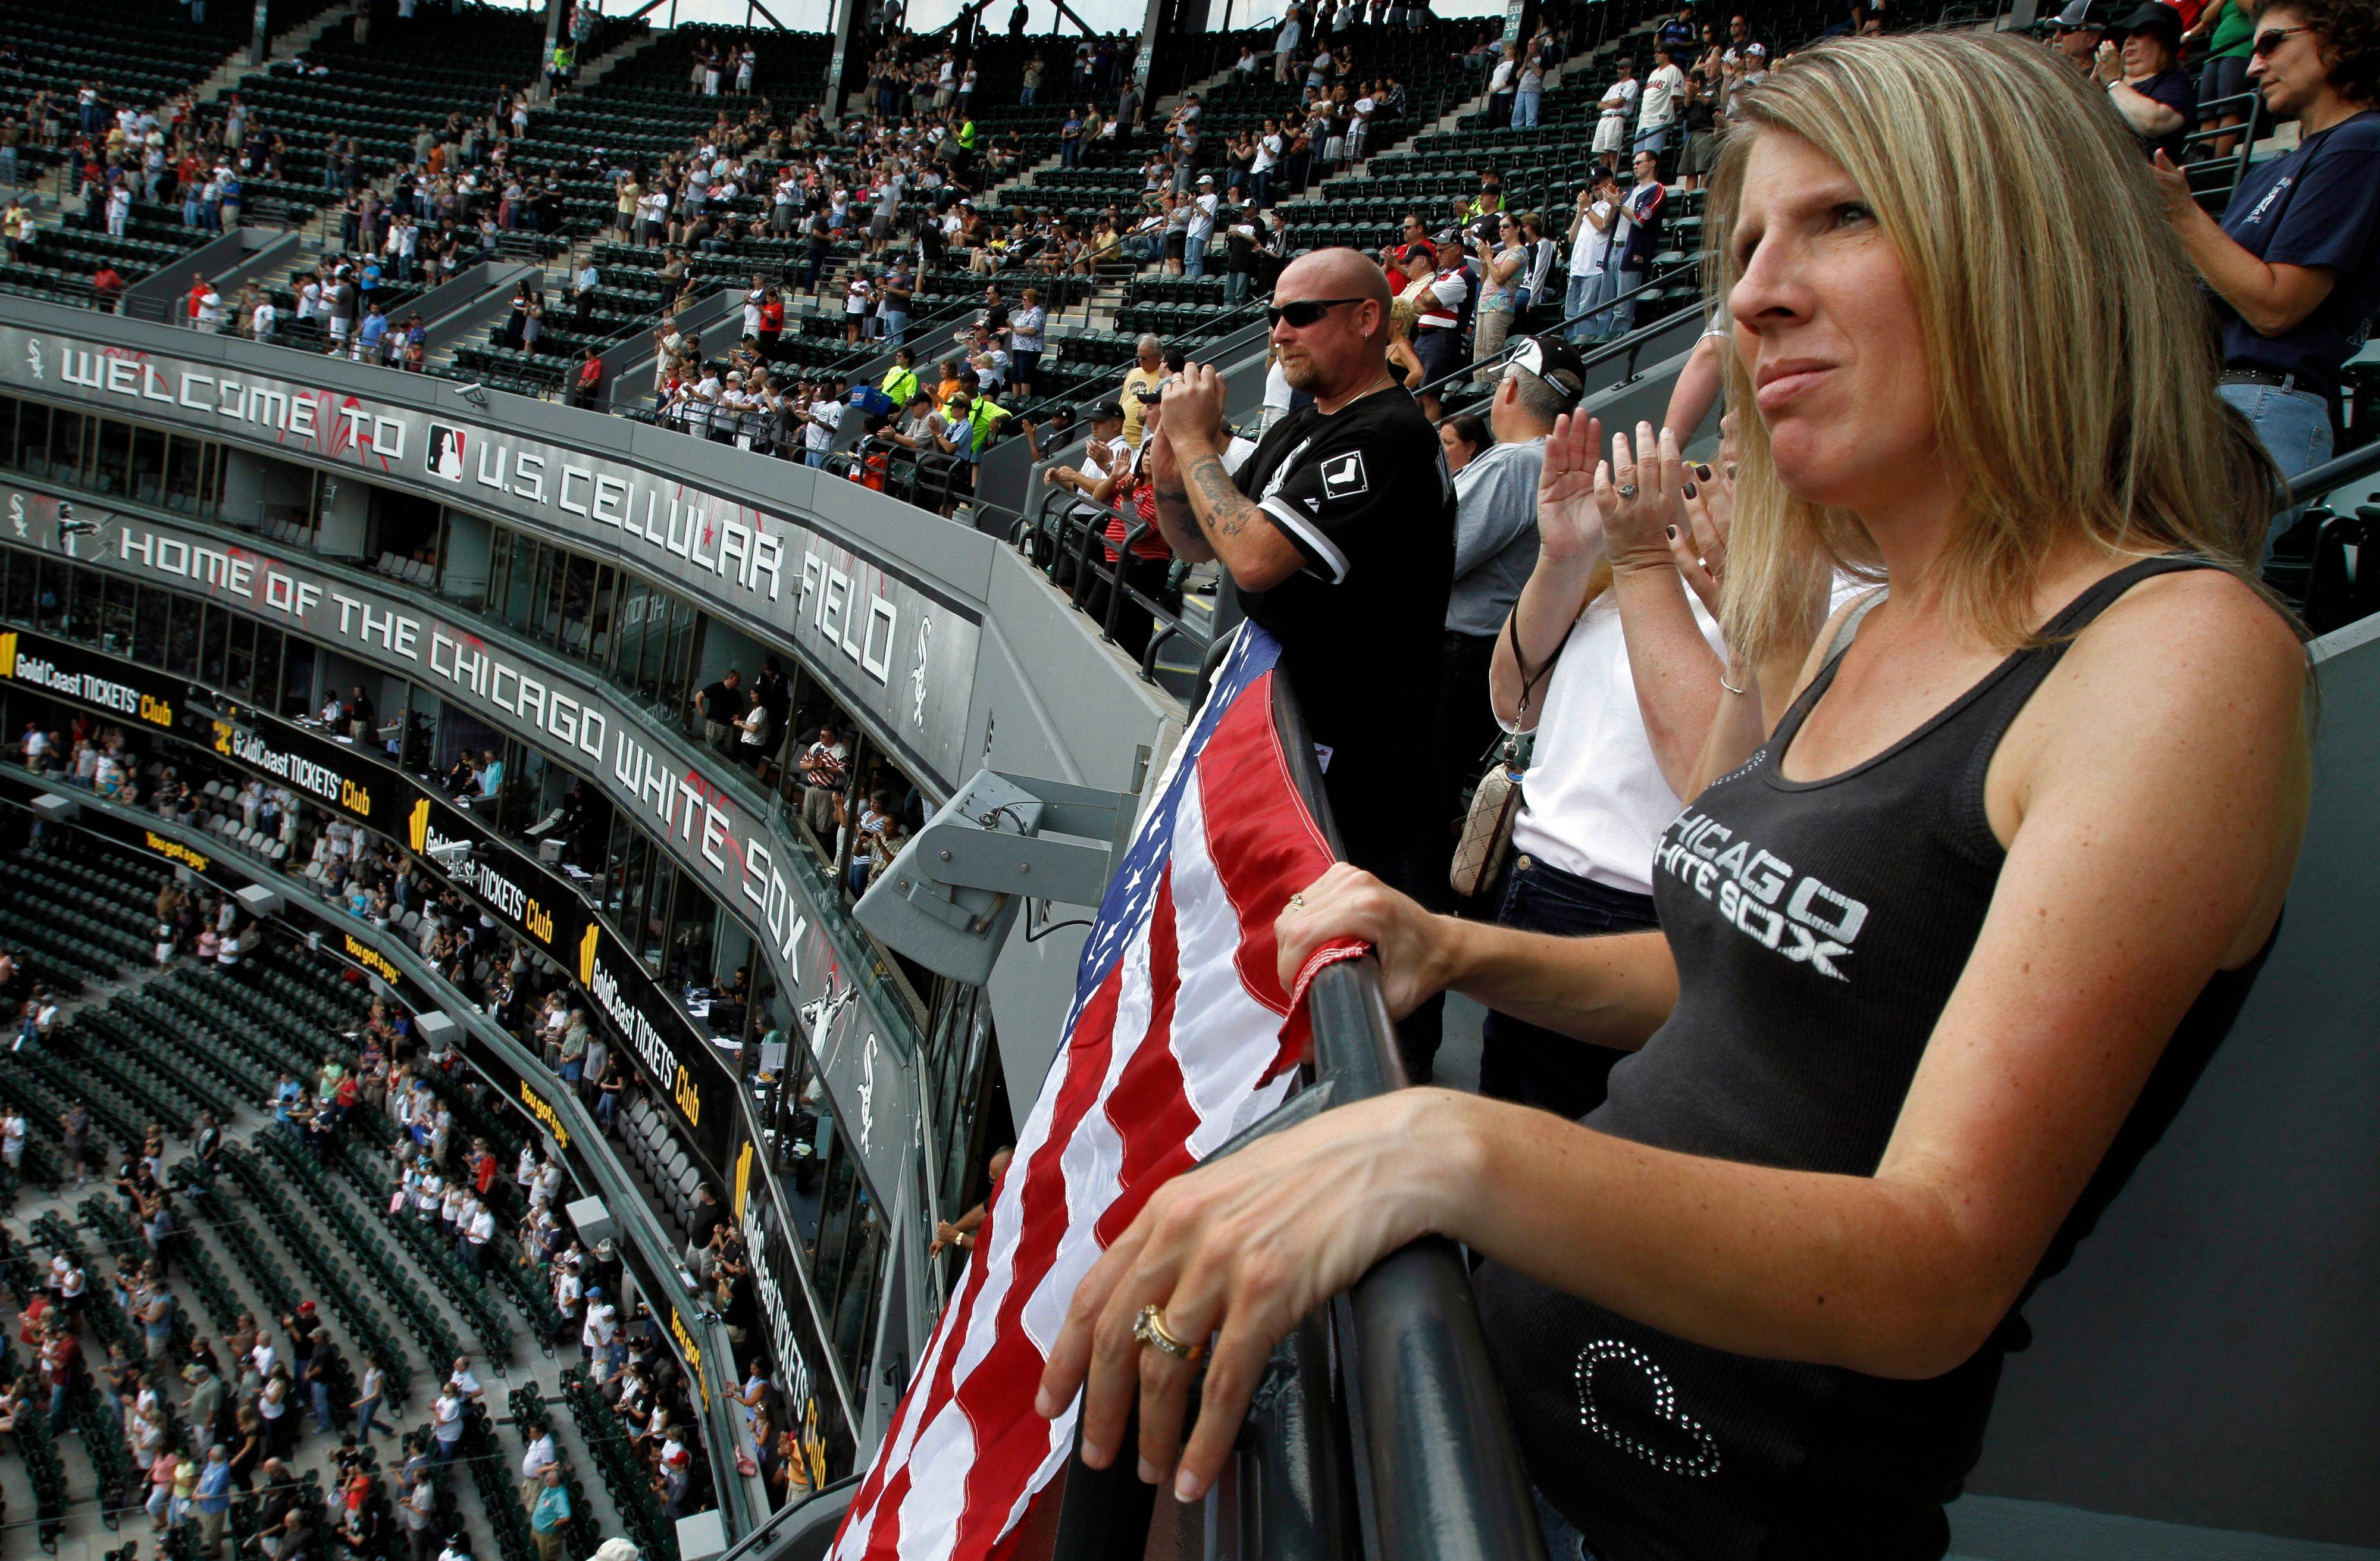 Jen Gurschke, right, and husband Scott unfurl a United States flag during a 9/11 remembrance ceremony Sunday before the start of the White Sox/Indians game at U.S. Cellular Field.